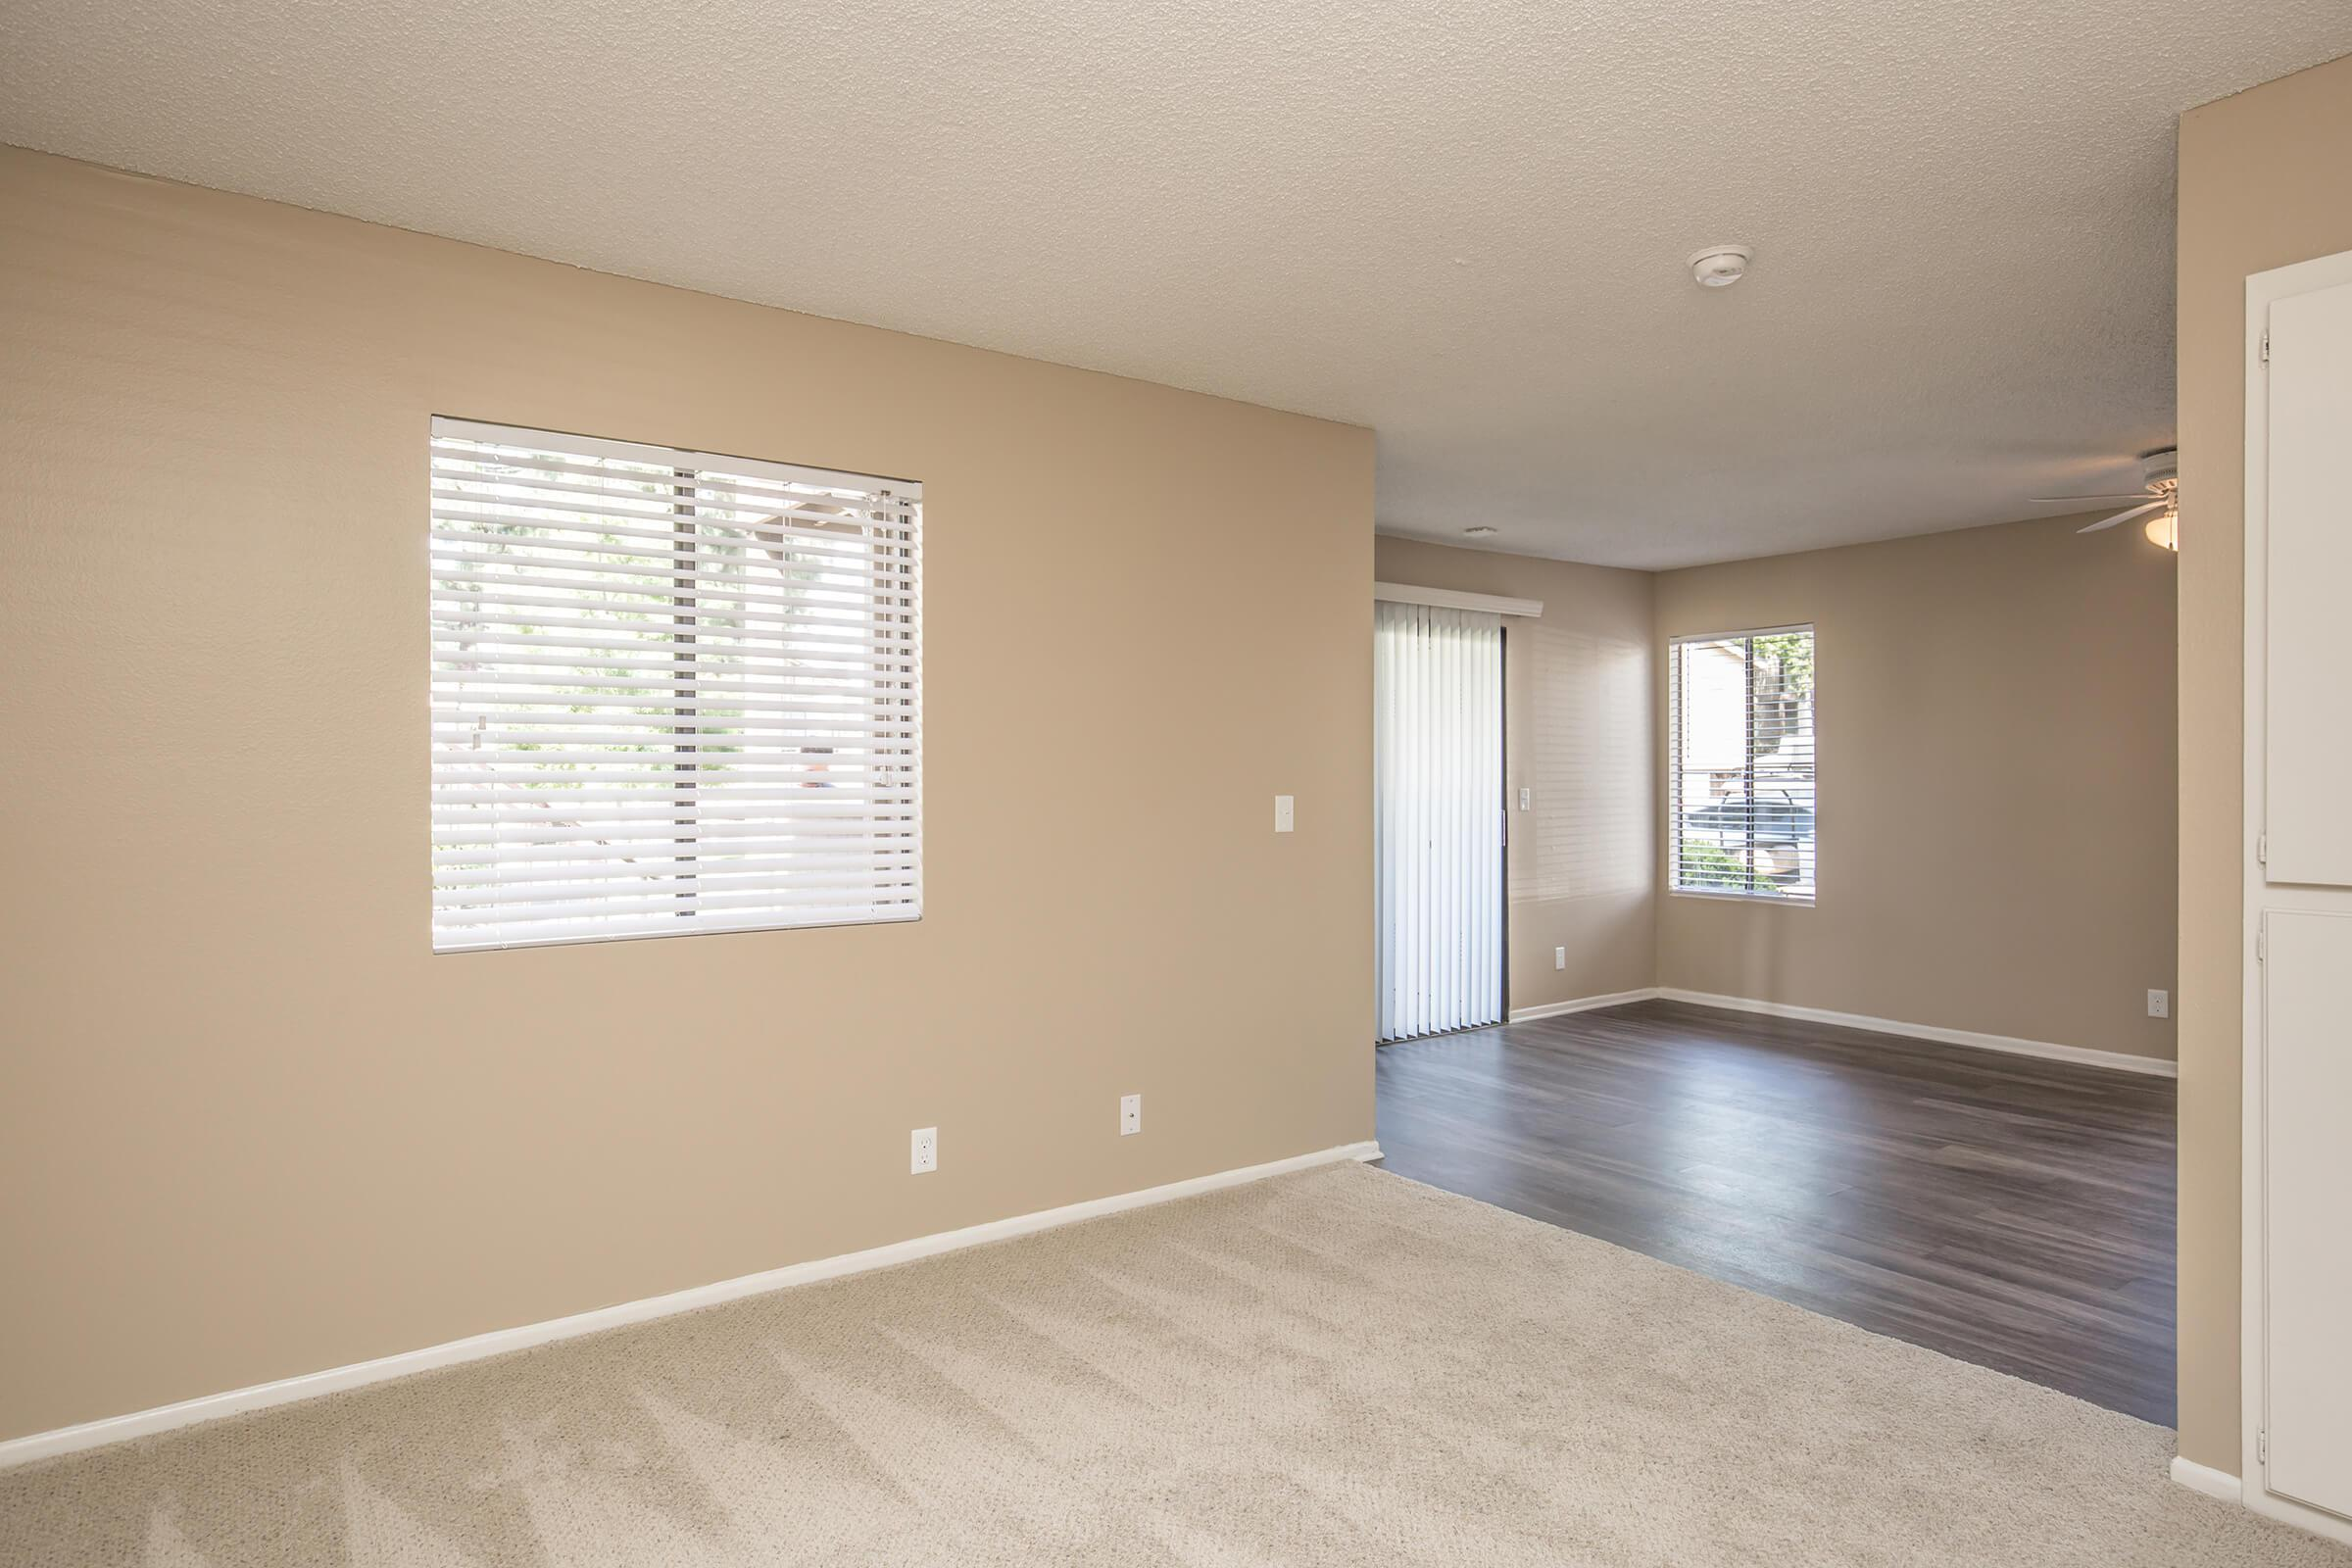 Unfurnished carpeted living room and dining room with wooden floors